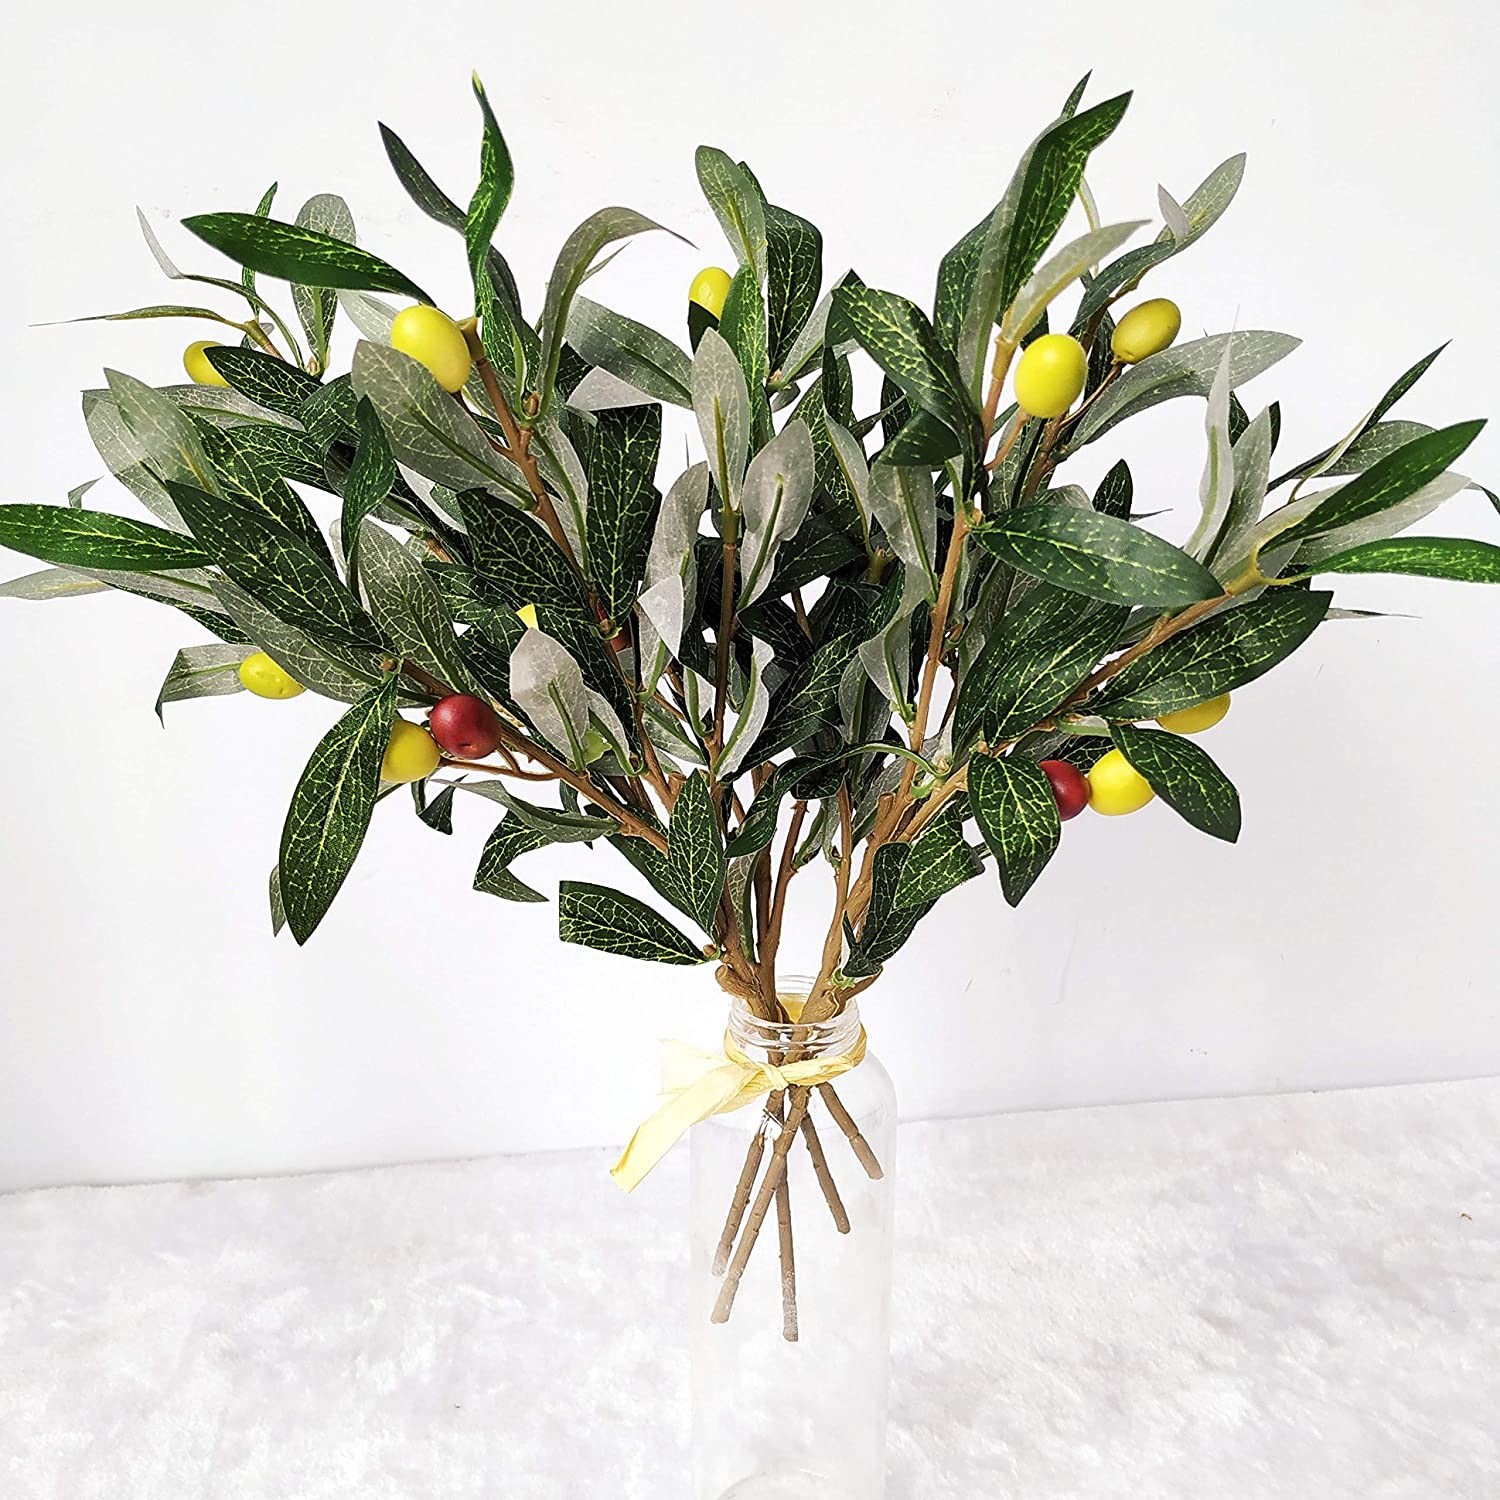 and Stems with Fruit for Decoration Faux Tree Plant Fake Olives Leaf Spray Home Kitchen Party Plastic Decor AF43 ShoppeWatch 5pcs Artificial Olive Leaves Branches